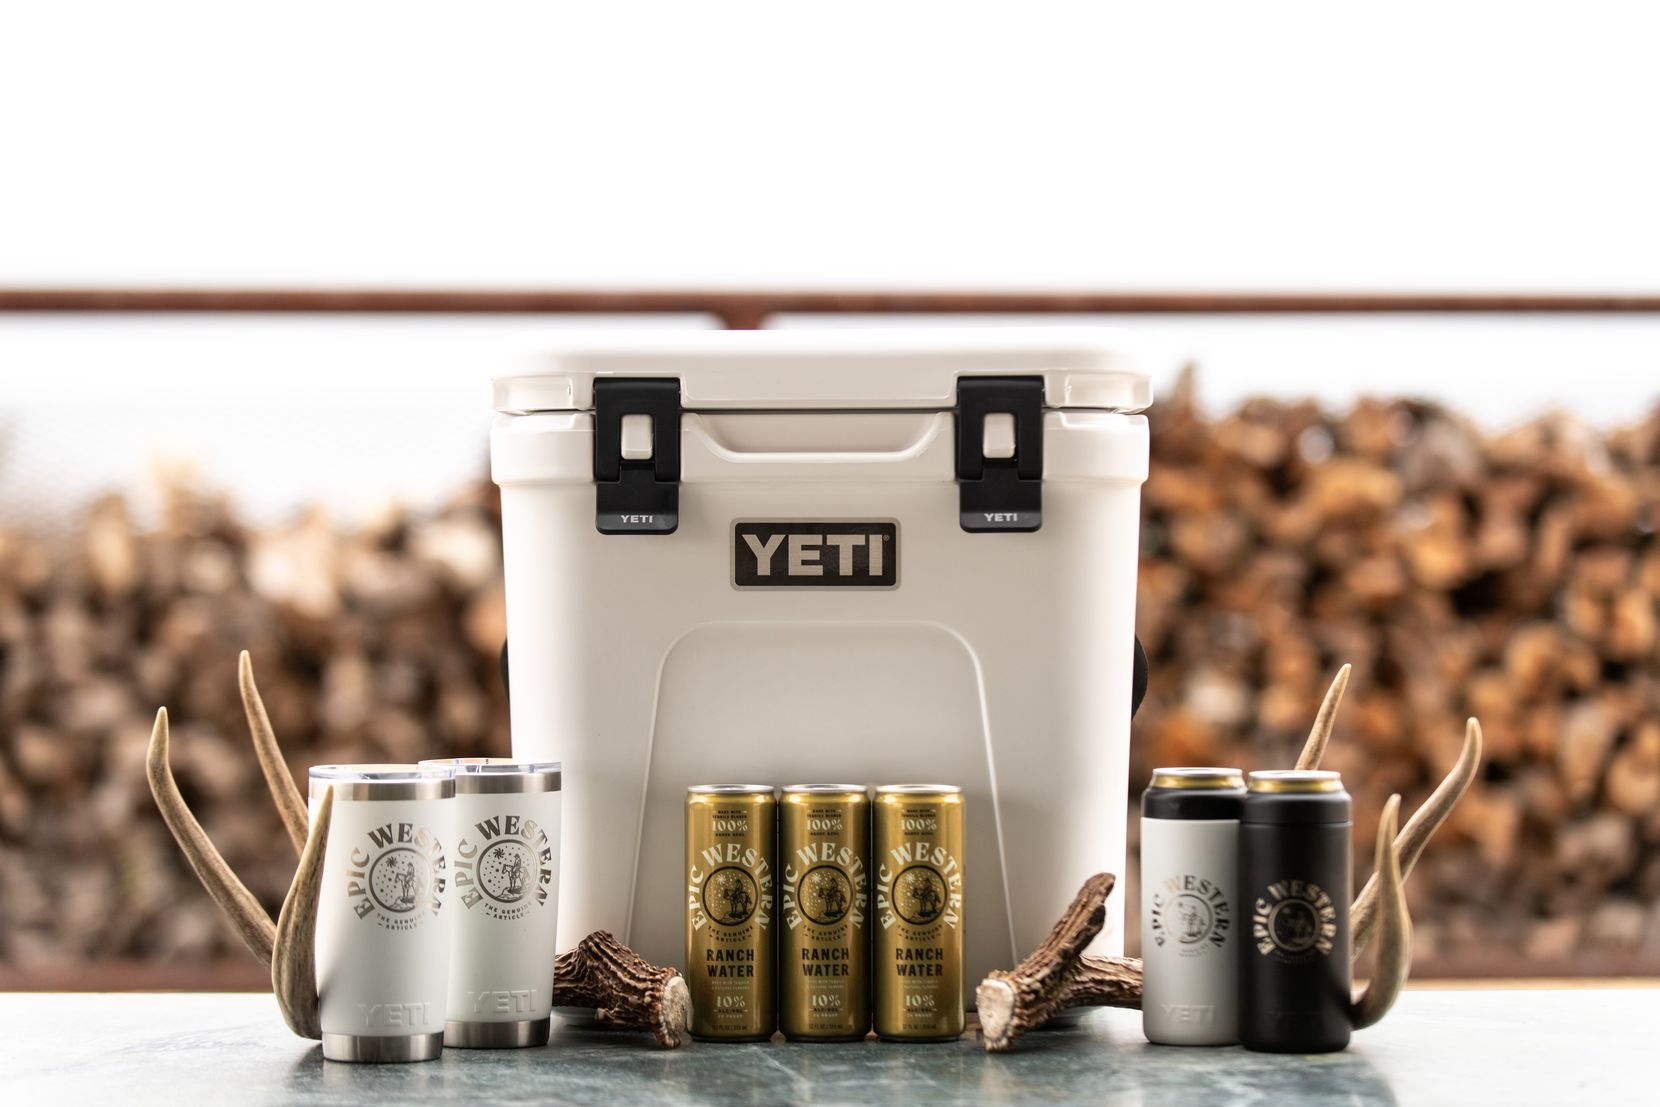 Epic Western ranch water is made with tequila and Mexican mineral water. YETI is an investment partner.